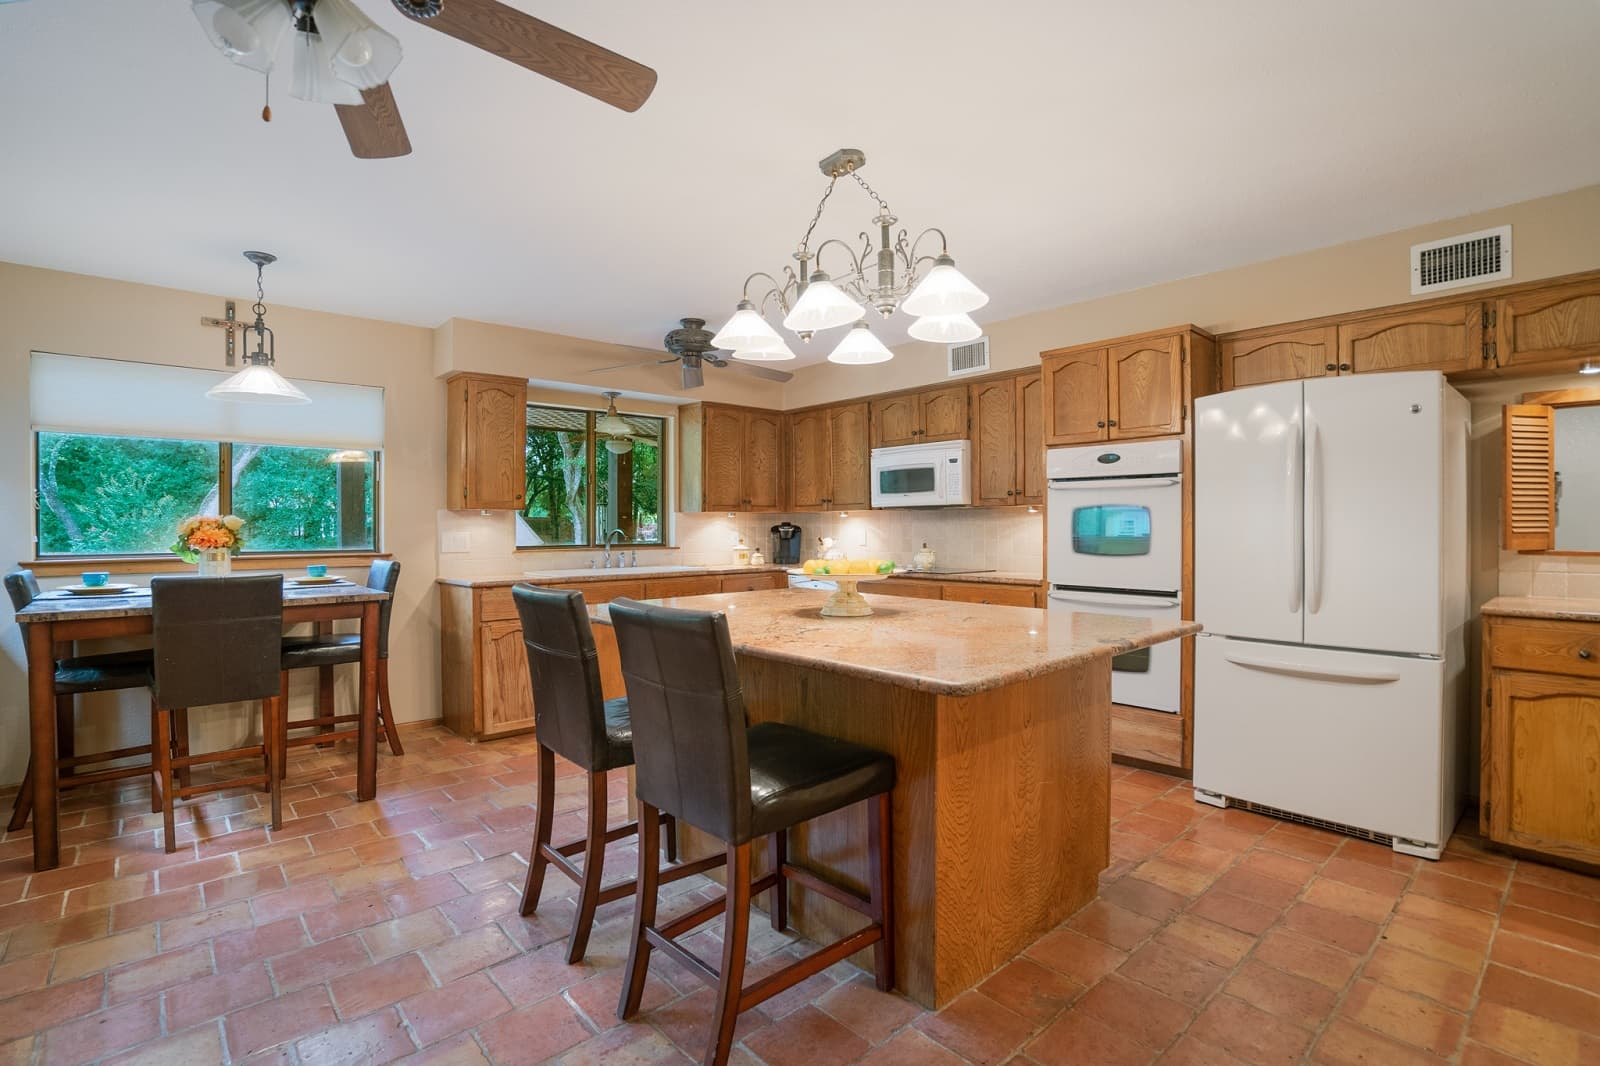 Real Estate Photography in Seguin - TX - Kitchen View